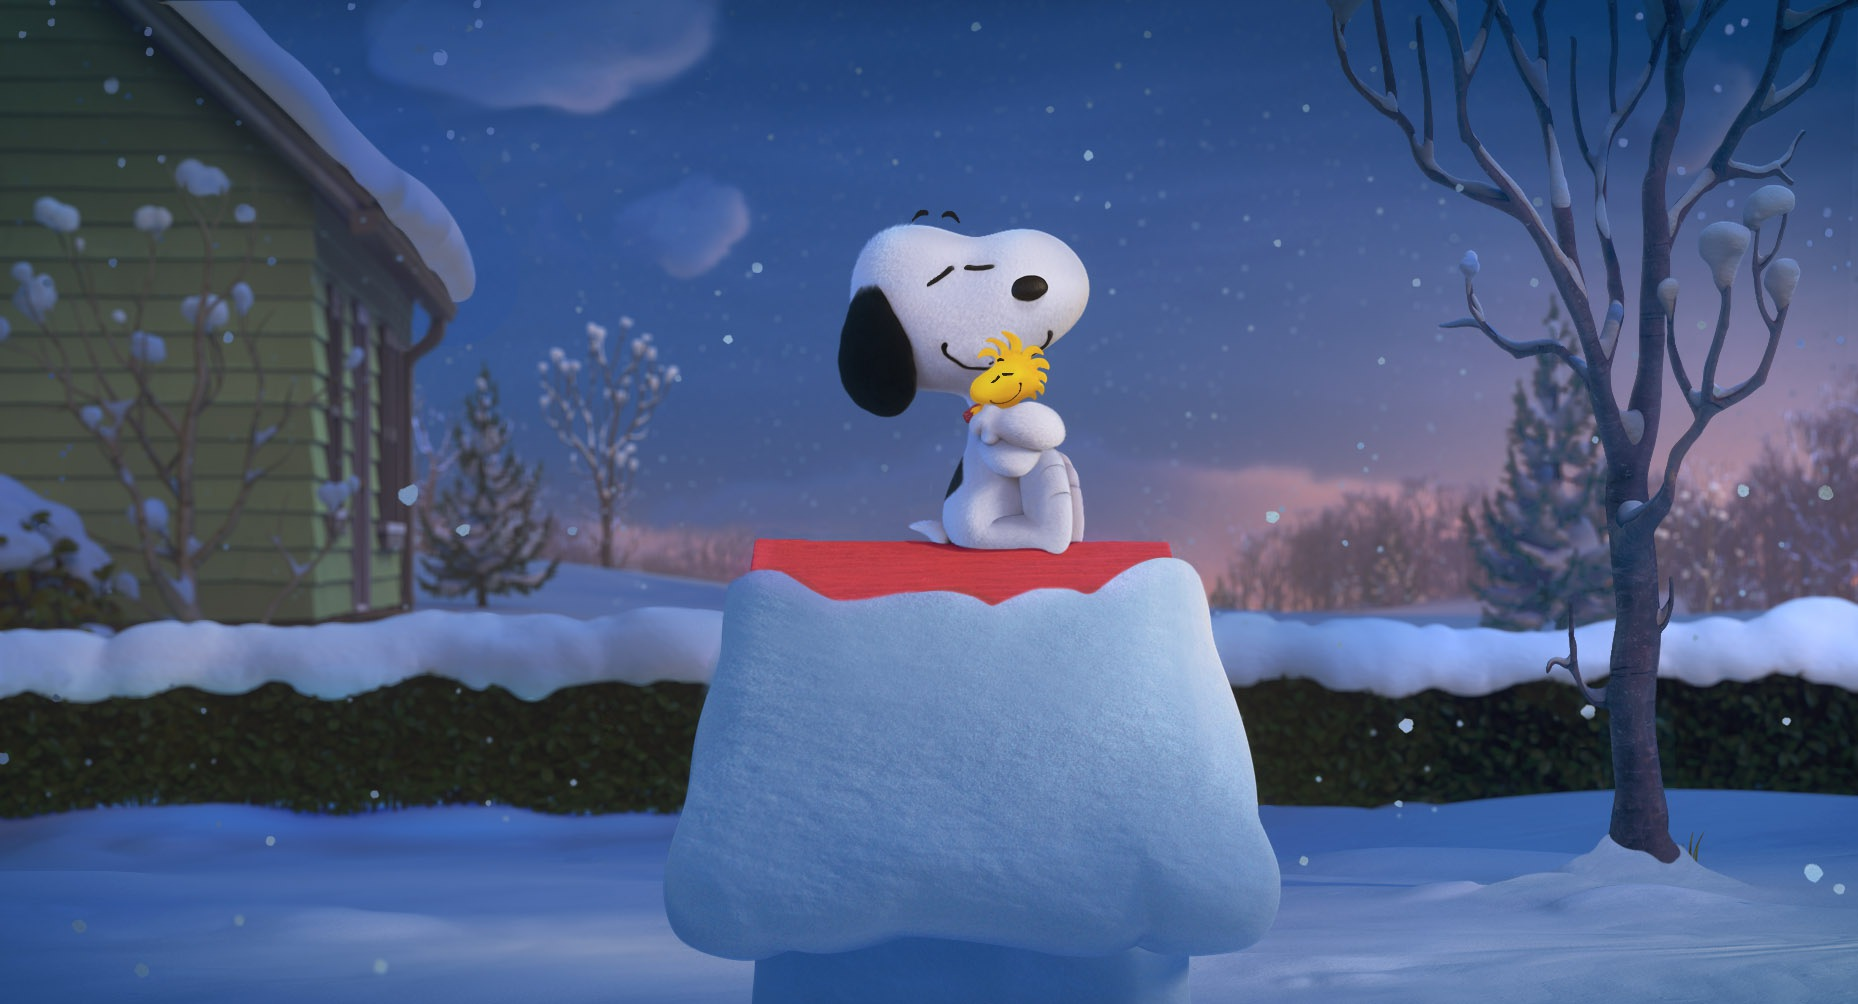 Peanuts Images Snoopy And Woodstock Hd Wallpaper And Background